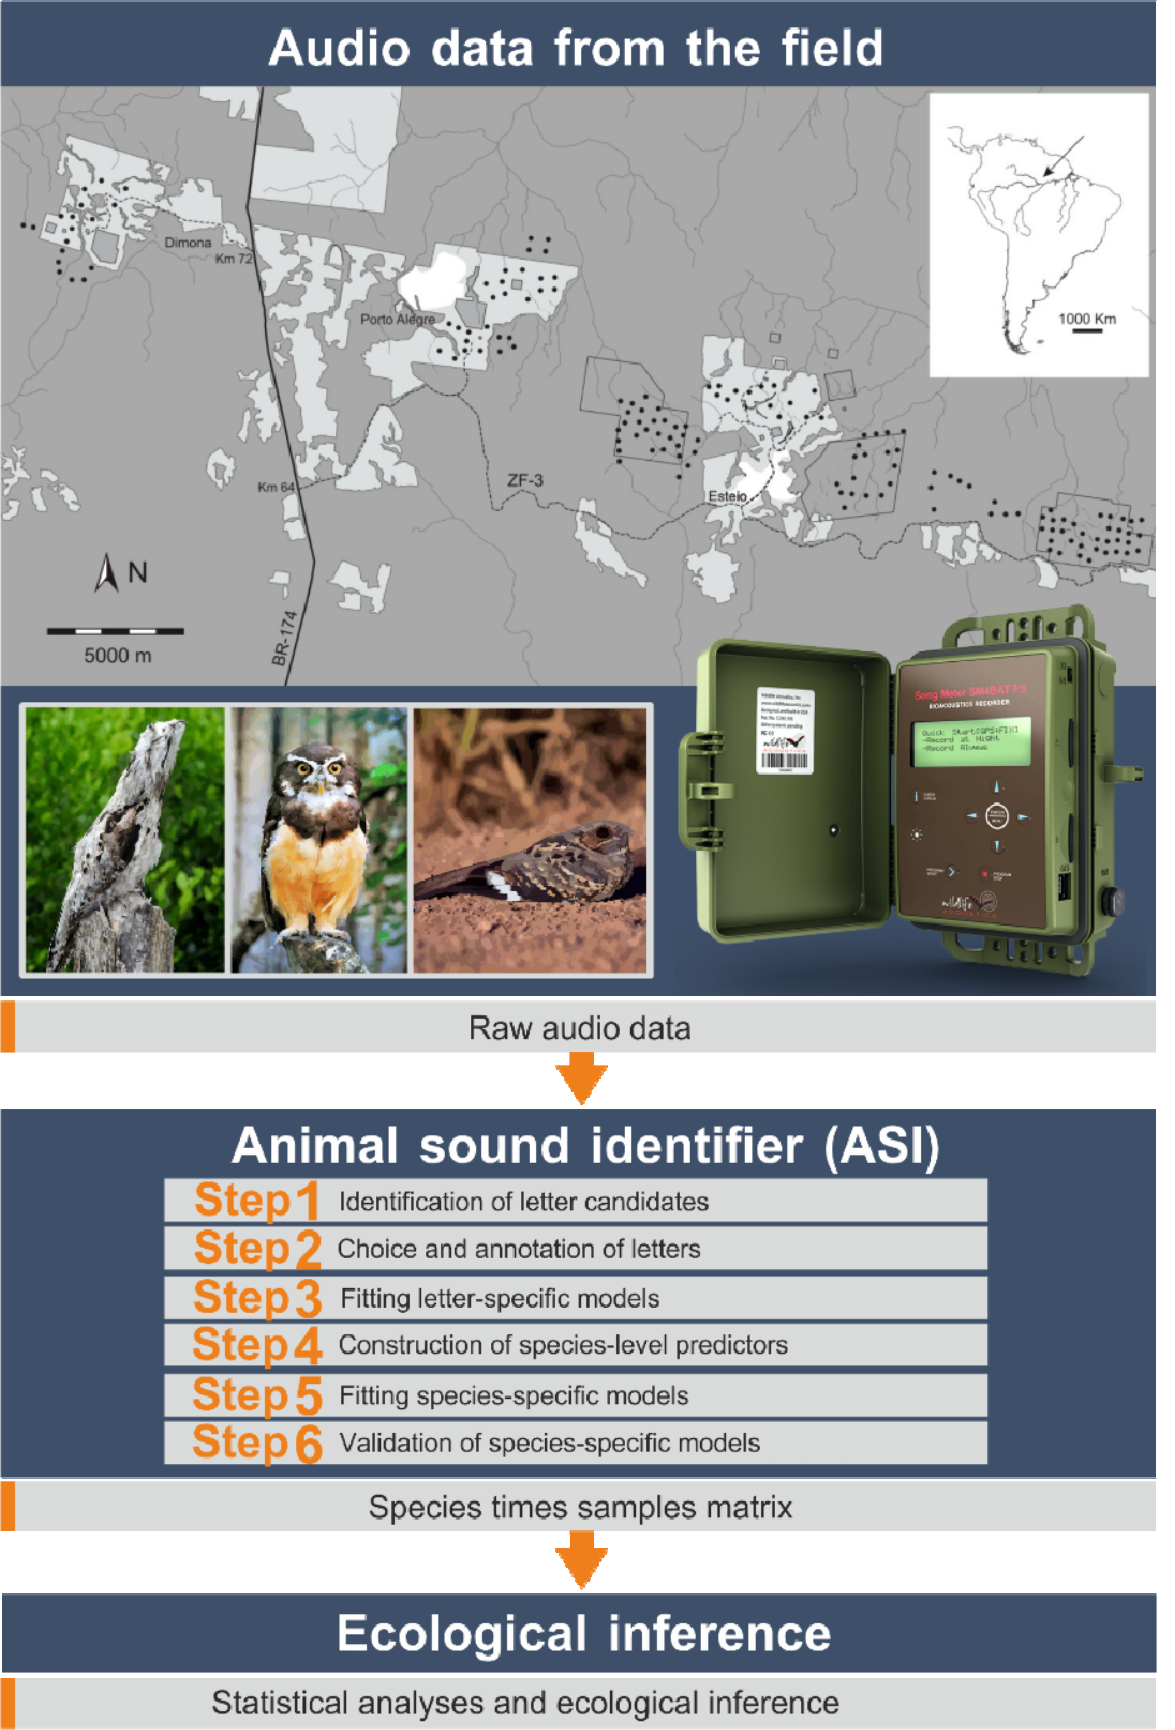 Ovasiakainen et al. (2018). Animal Sound Identifier (ASI): software for automated identification of vocal animals.